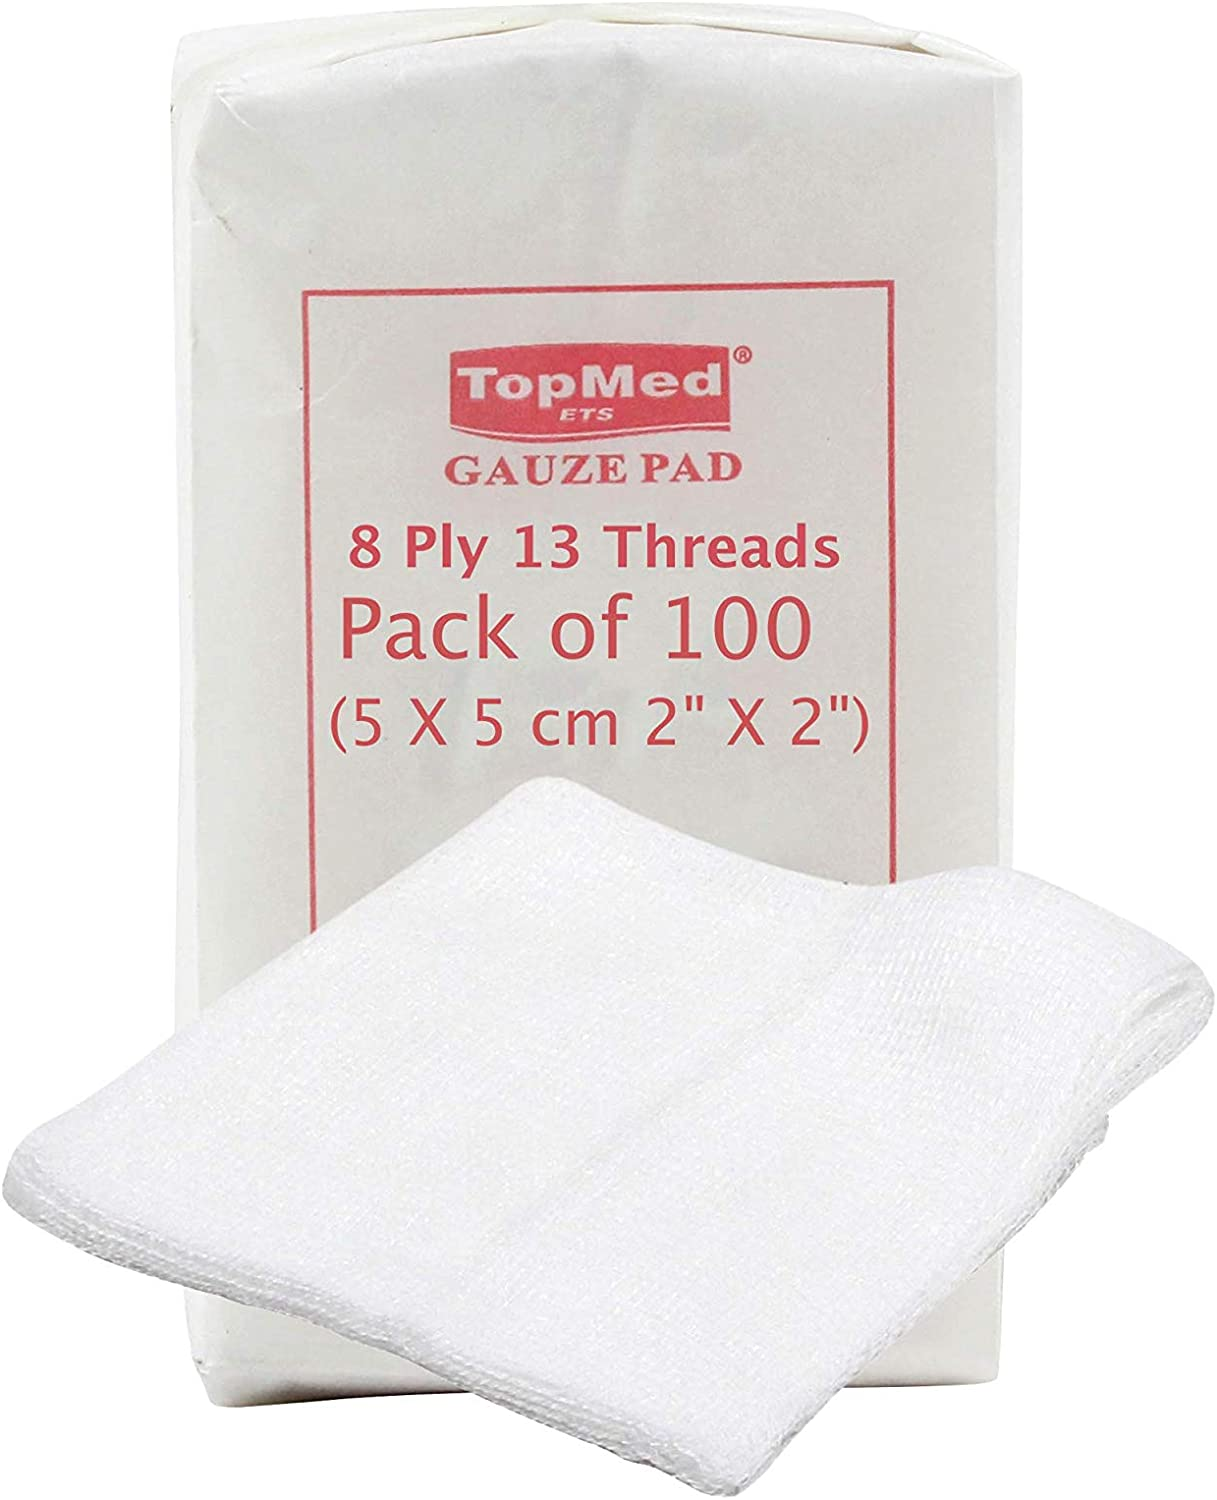 Cotton Gauze Swabs, Non-Sterile,White,8 Ply 13 Threads Pack of 100 (5 X 5 cm 2 X 2)